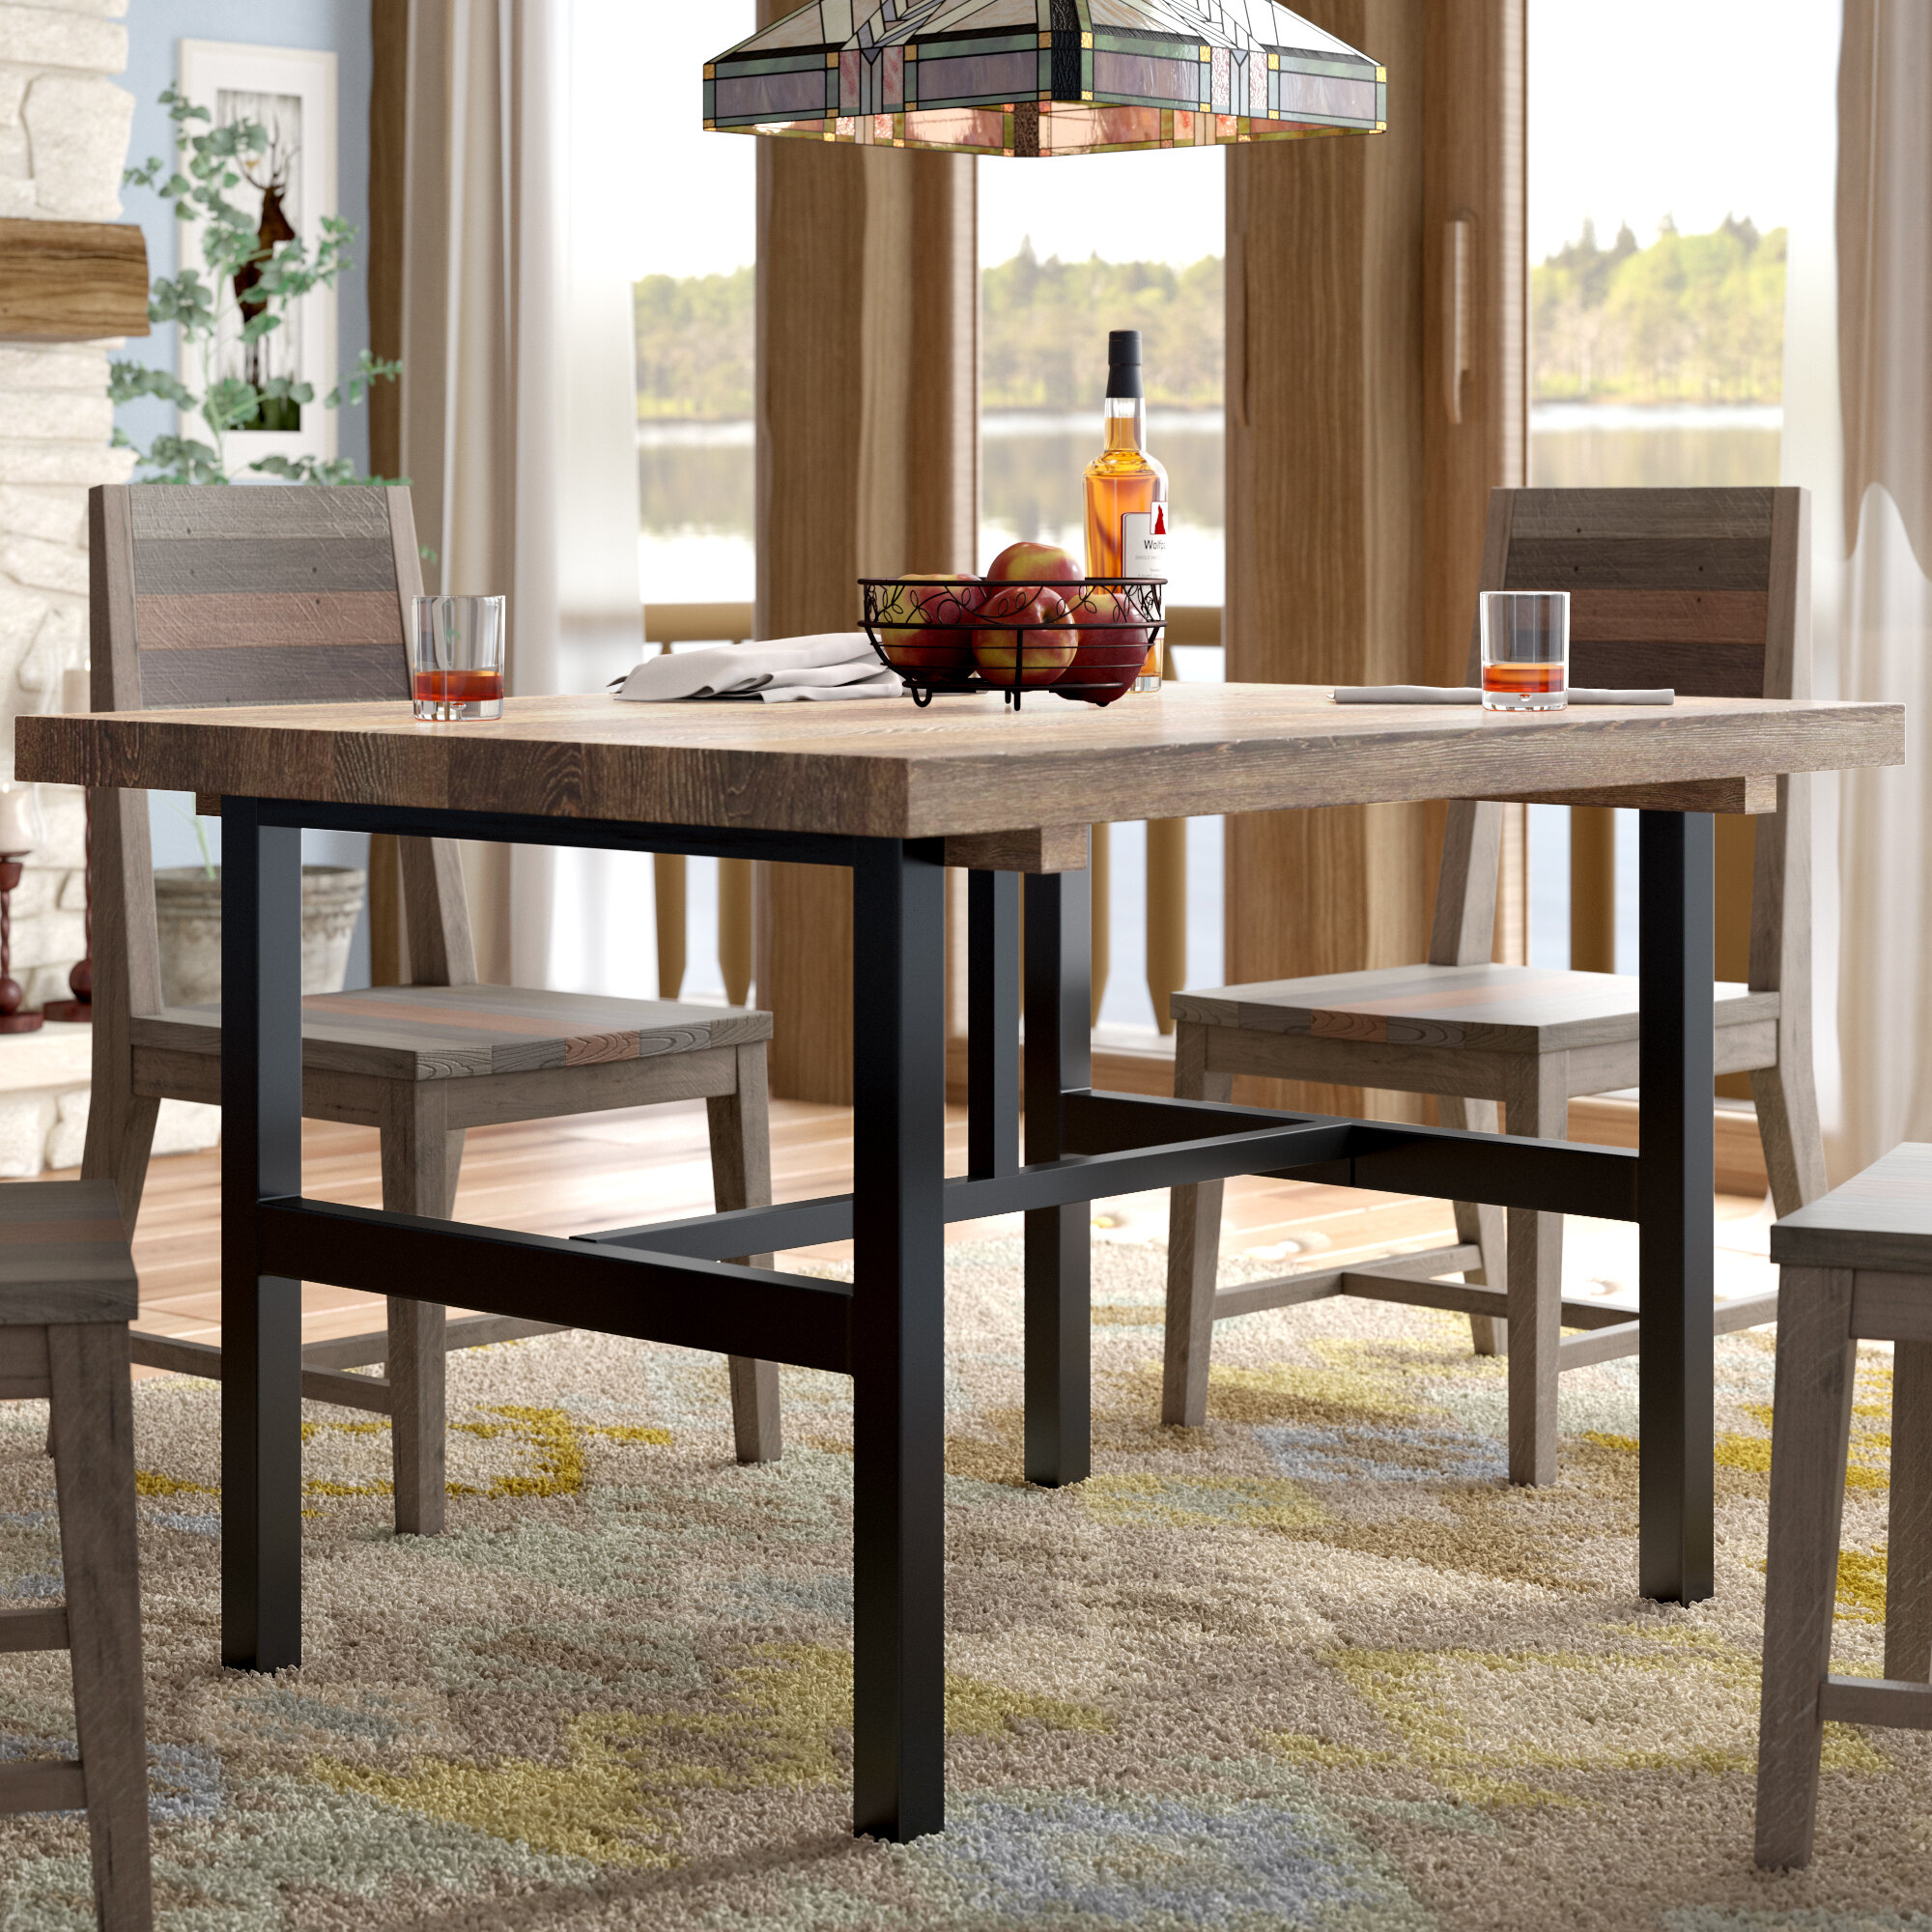 48 Inches Rectangular Kitchen Dining Tables You Ll Love In 2021 Wayfair